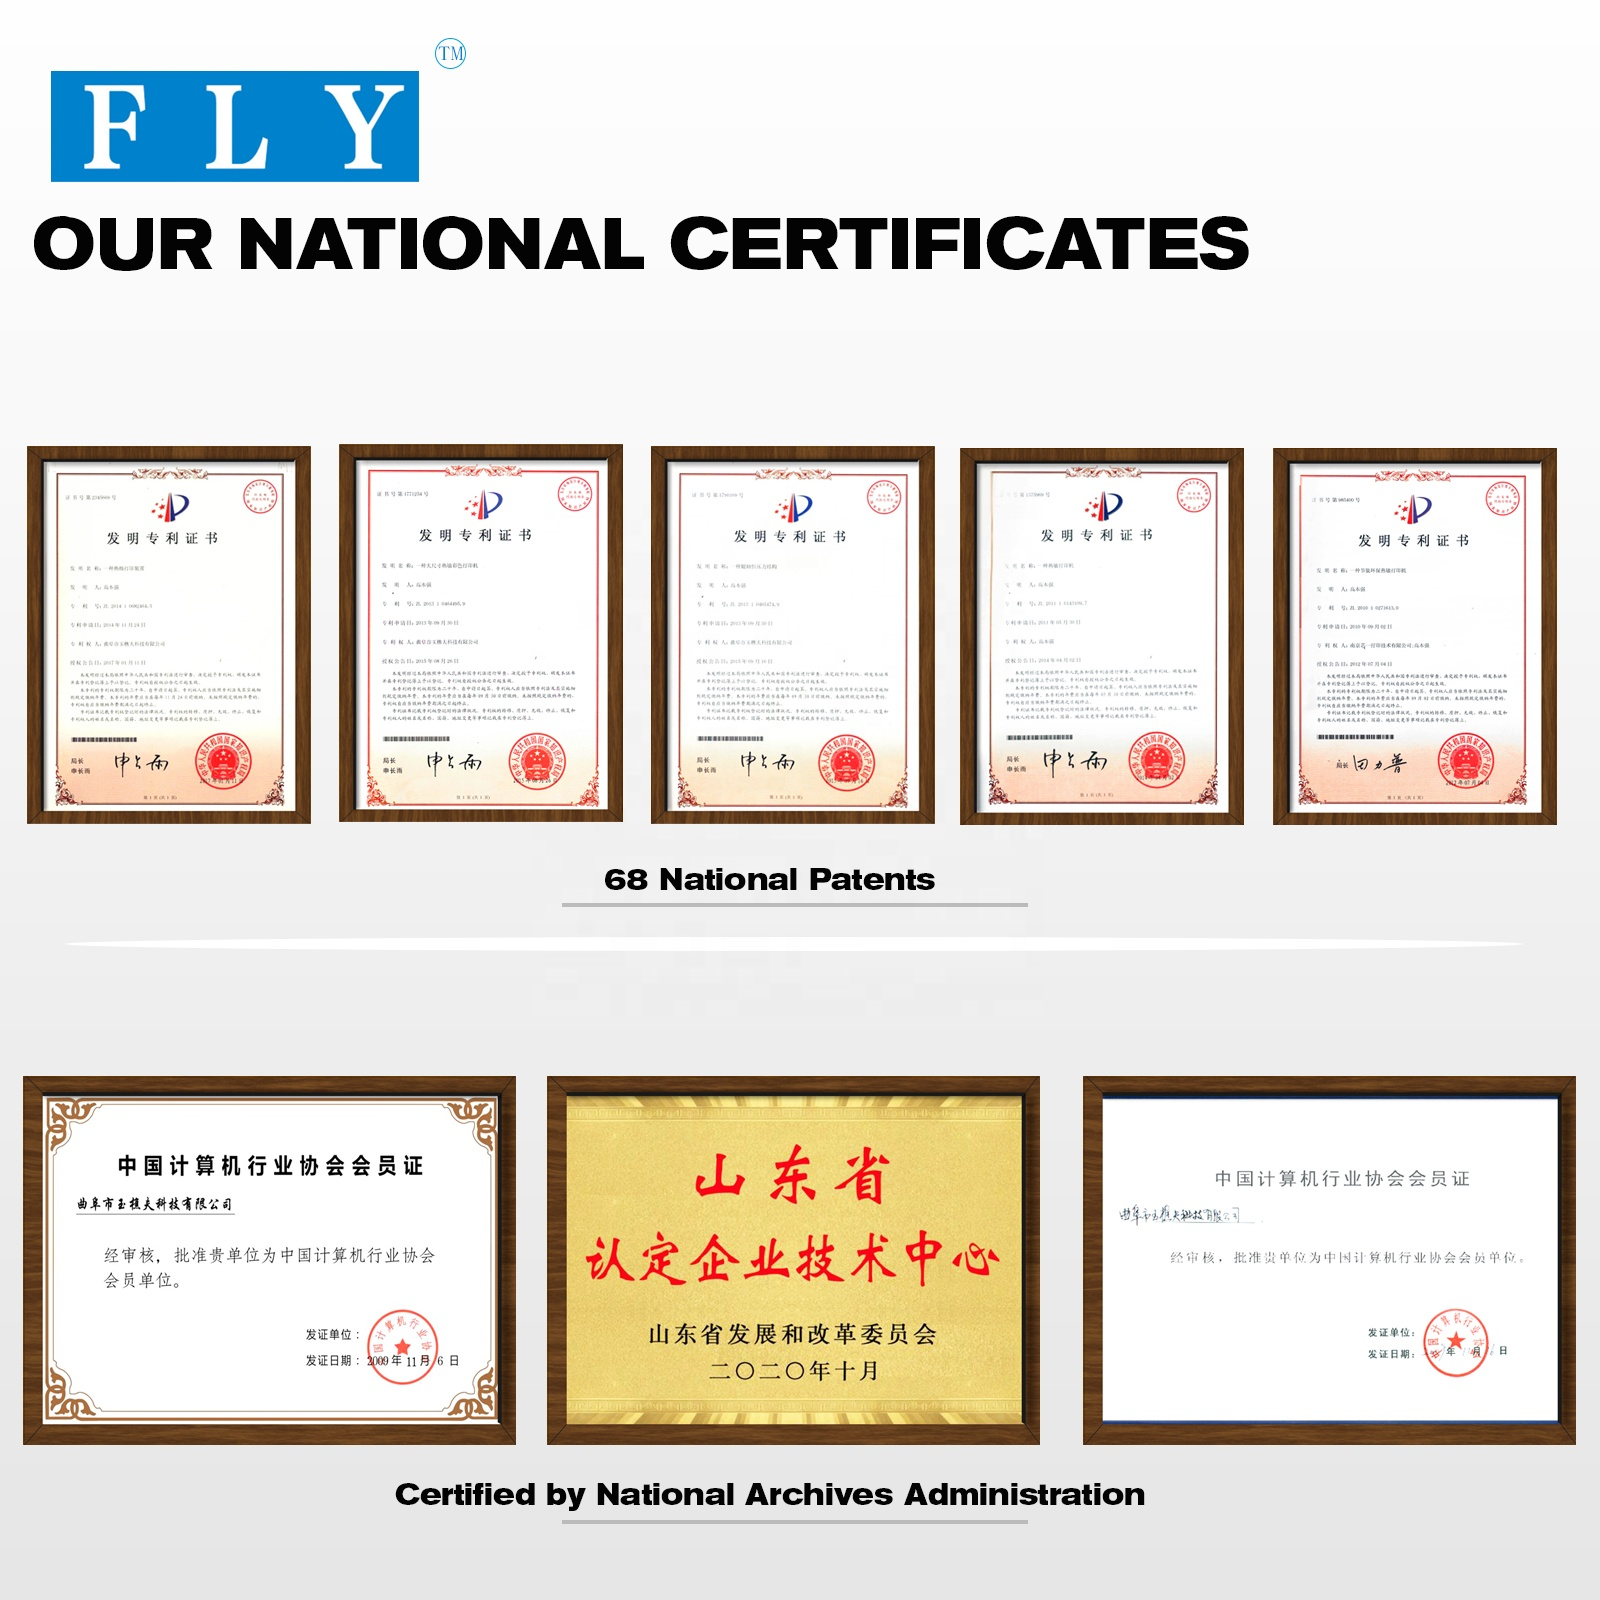 Thermal drawing printer Industrial thermal printer large format printer for sales near me architectural engineering plans